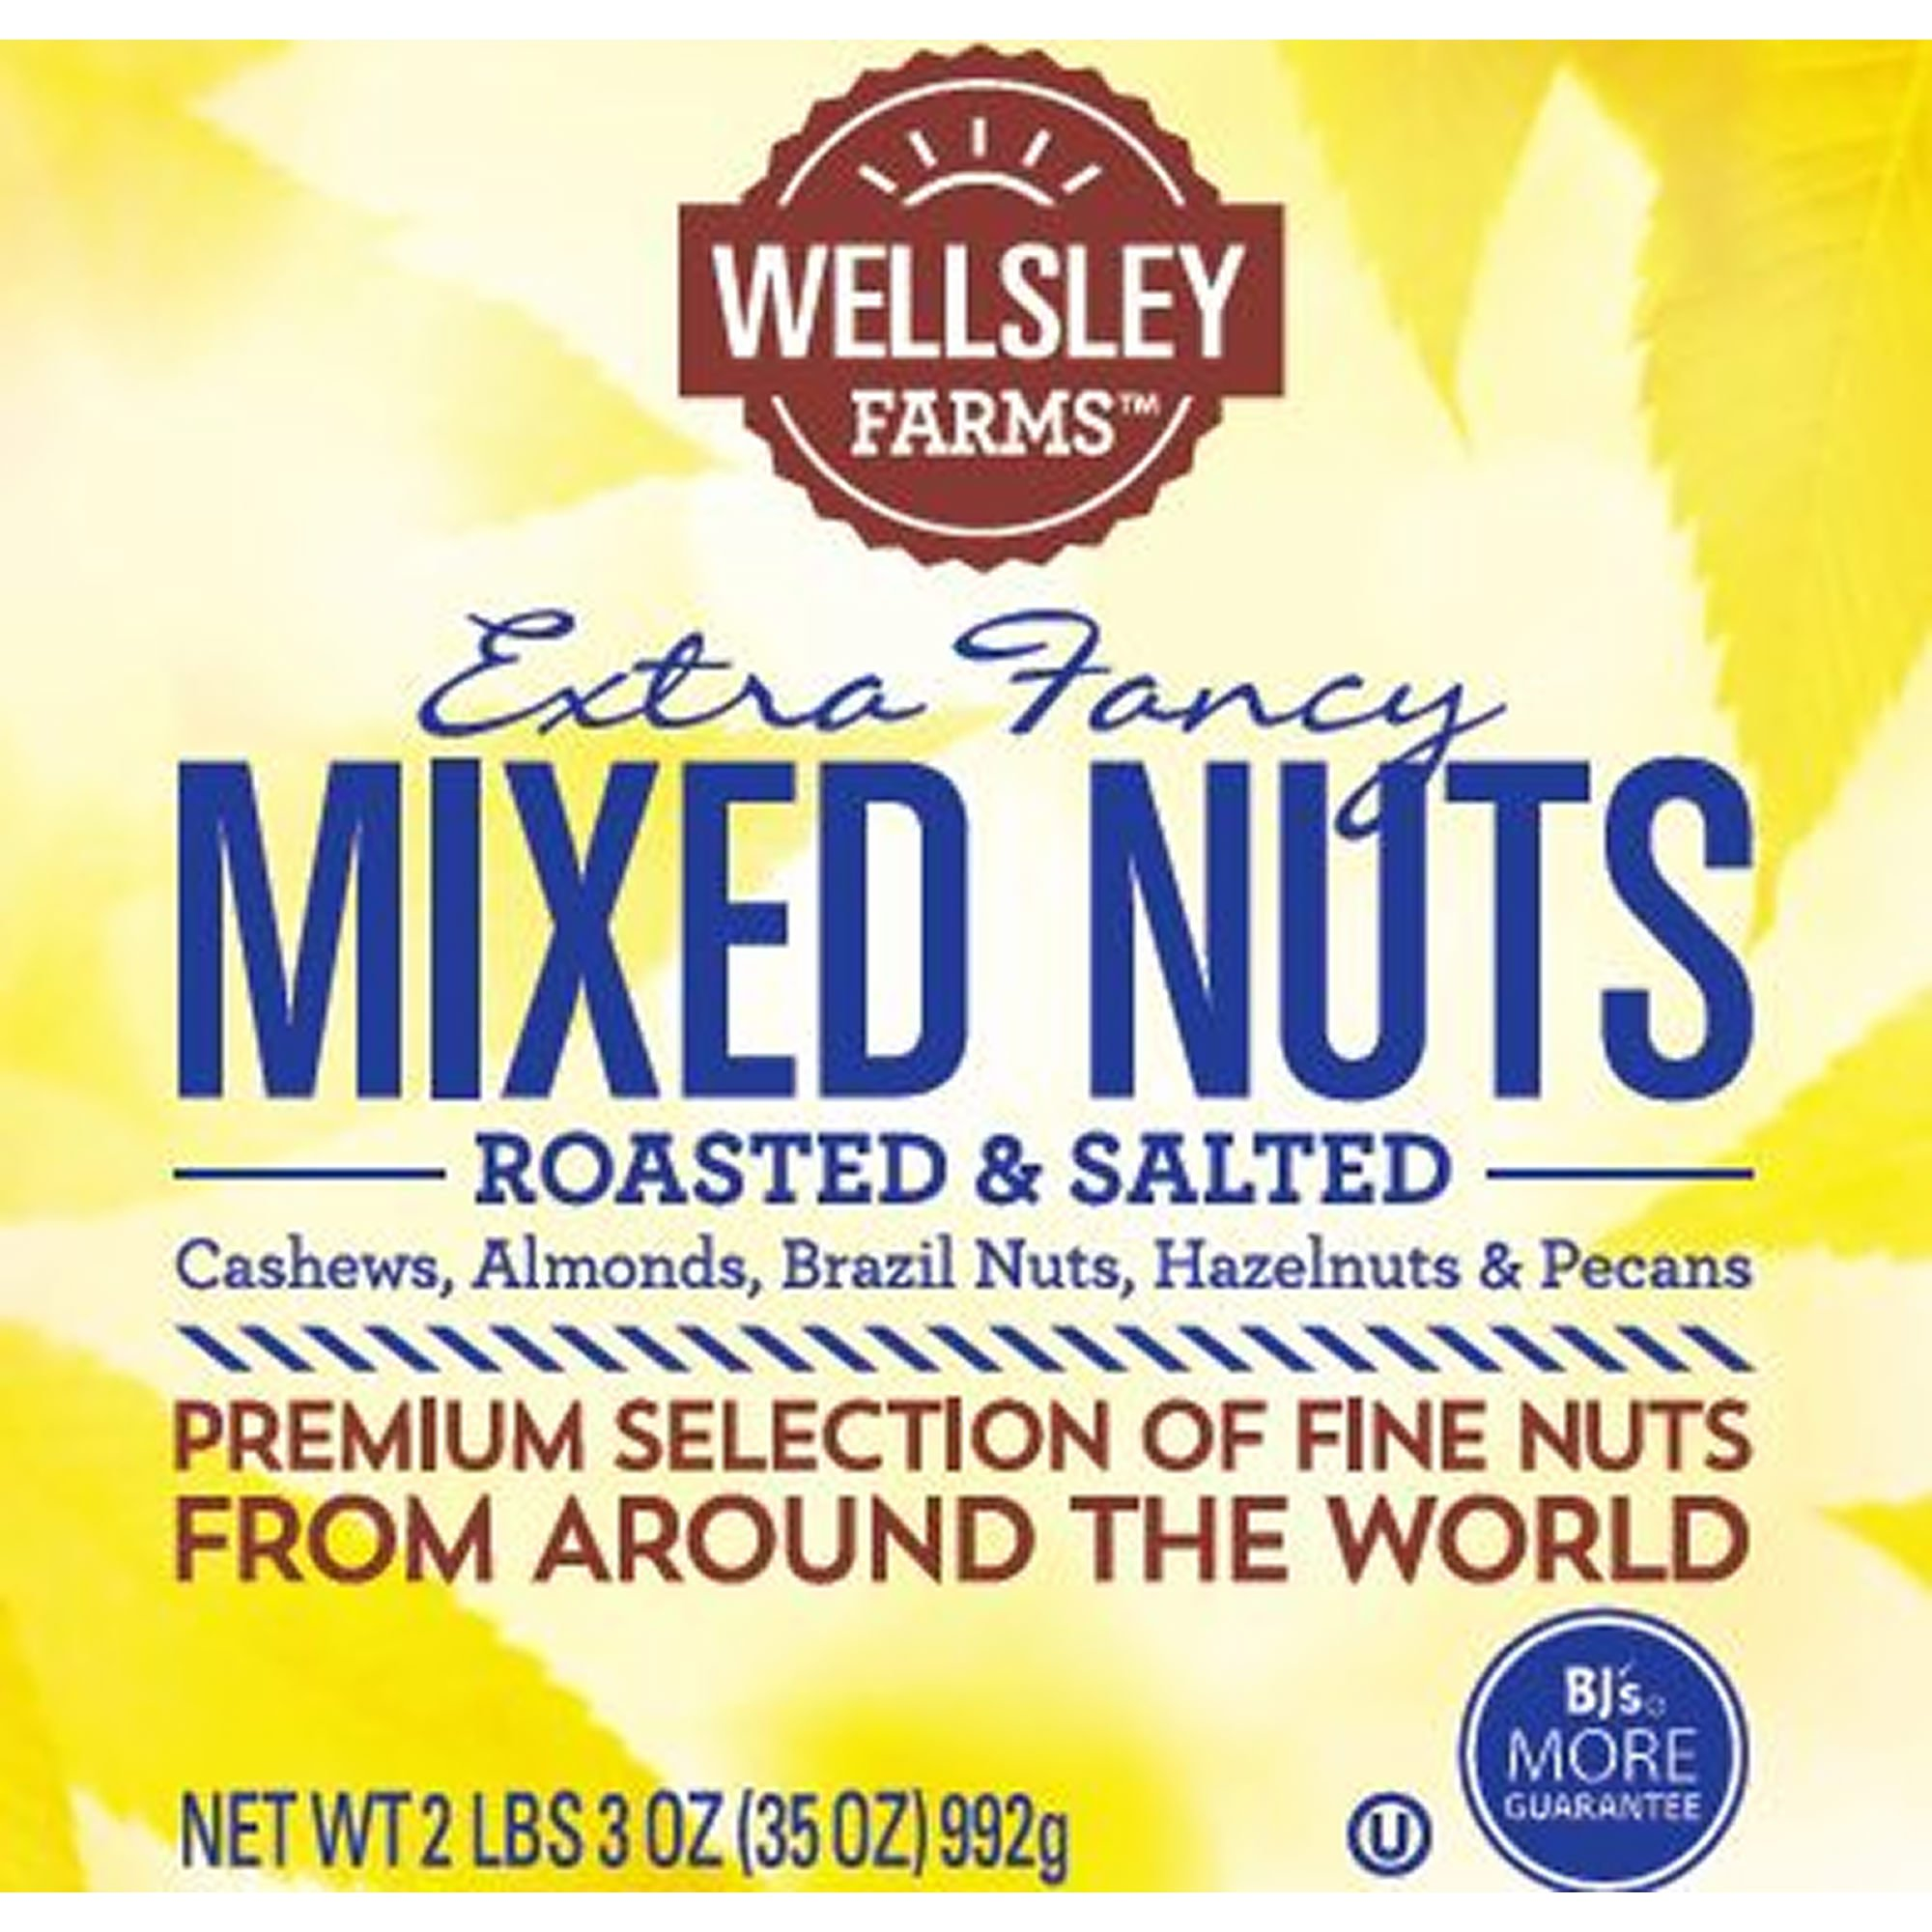 Wellsley Farms Fancy Mixed Nuts, 35 oz. (pack of 6)